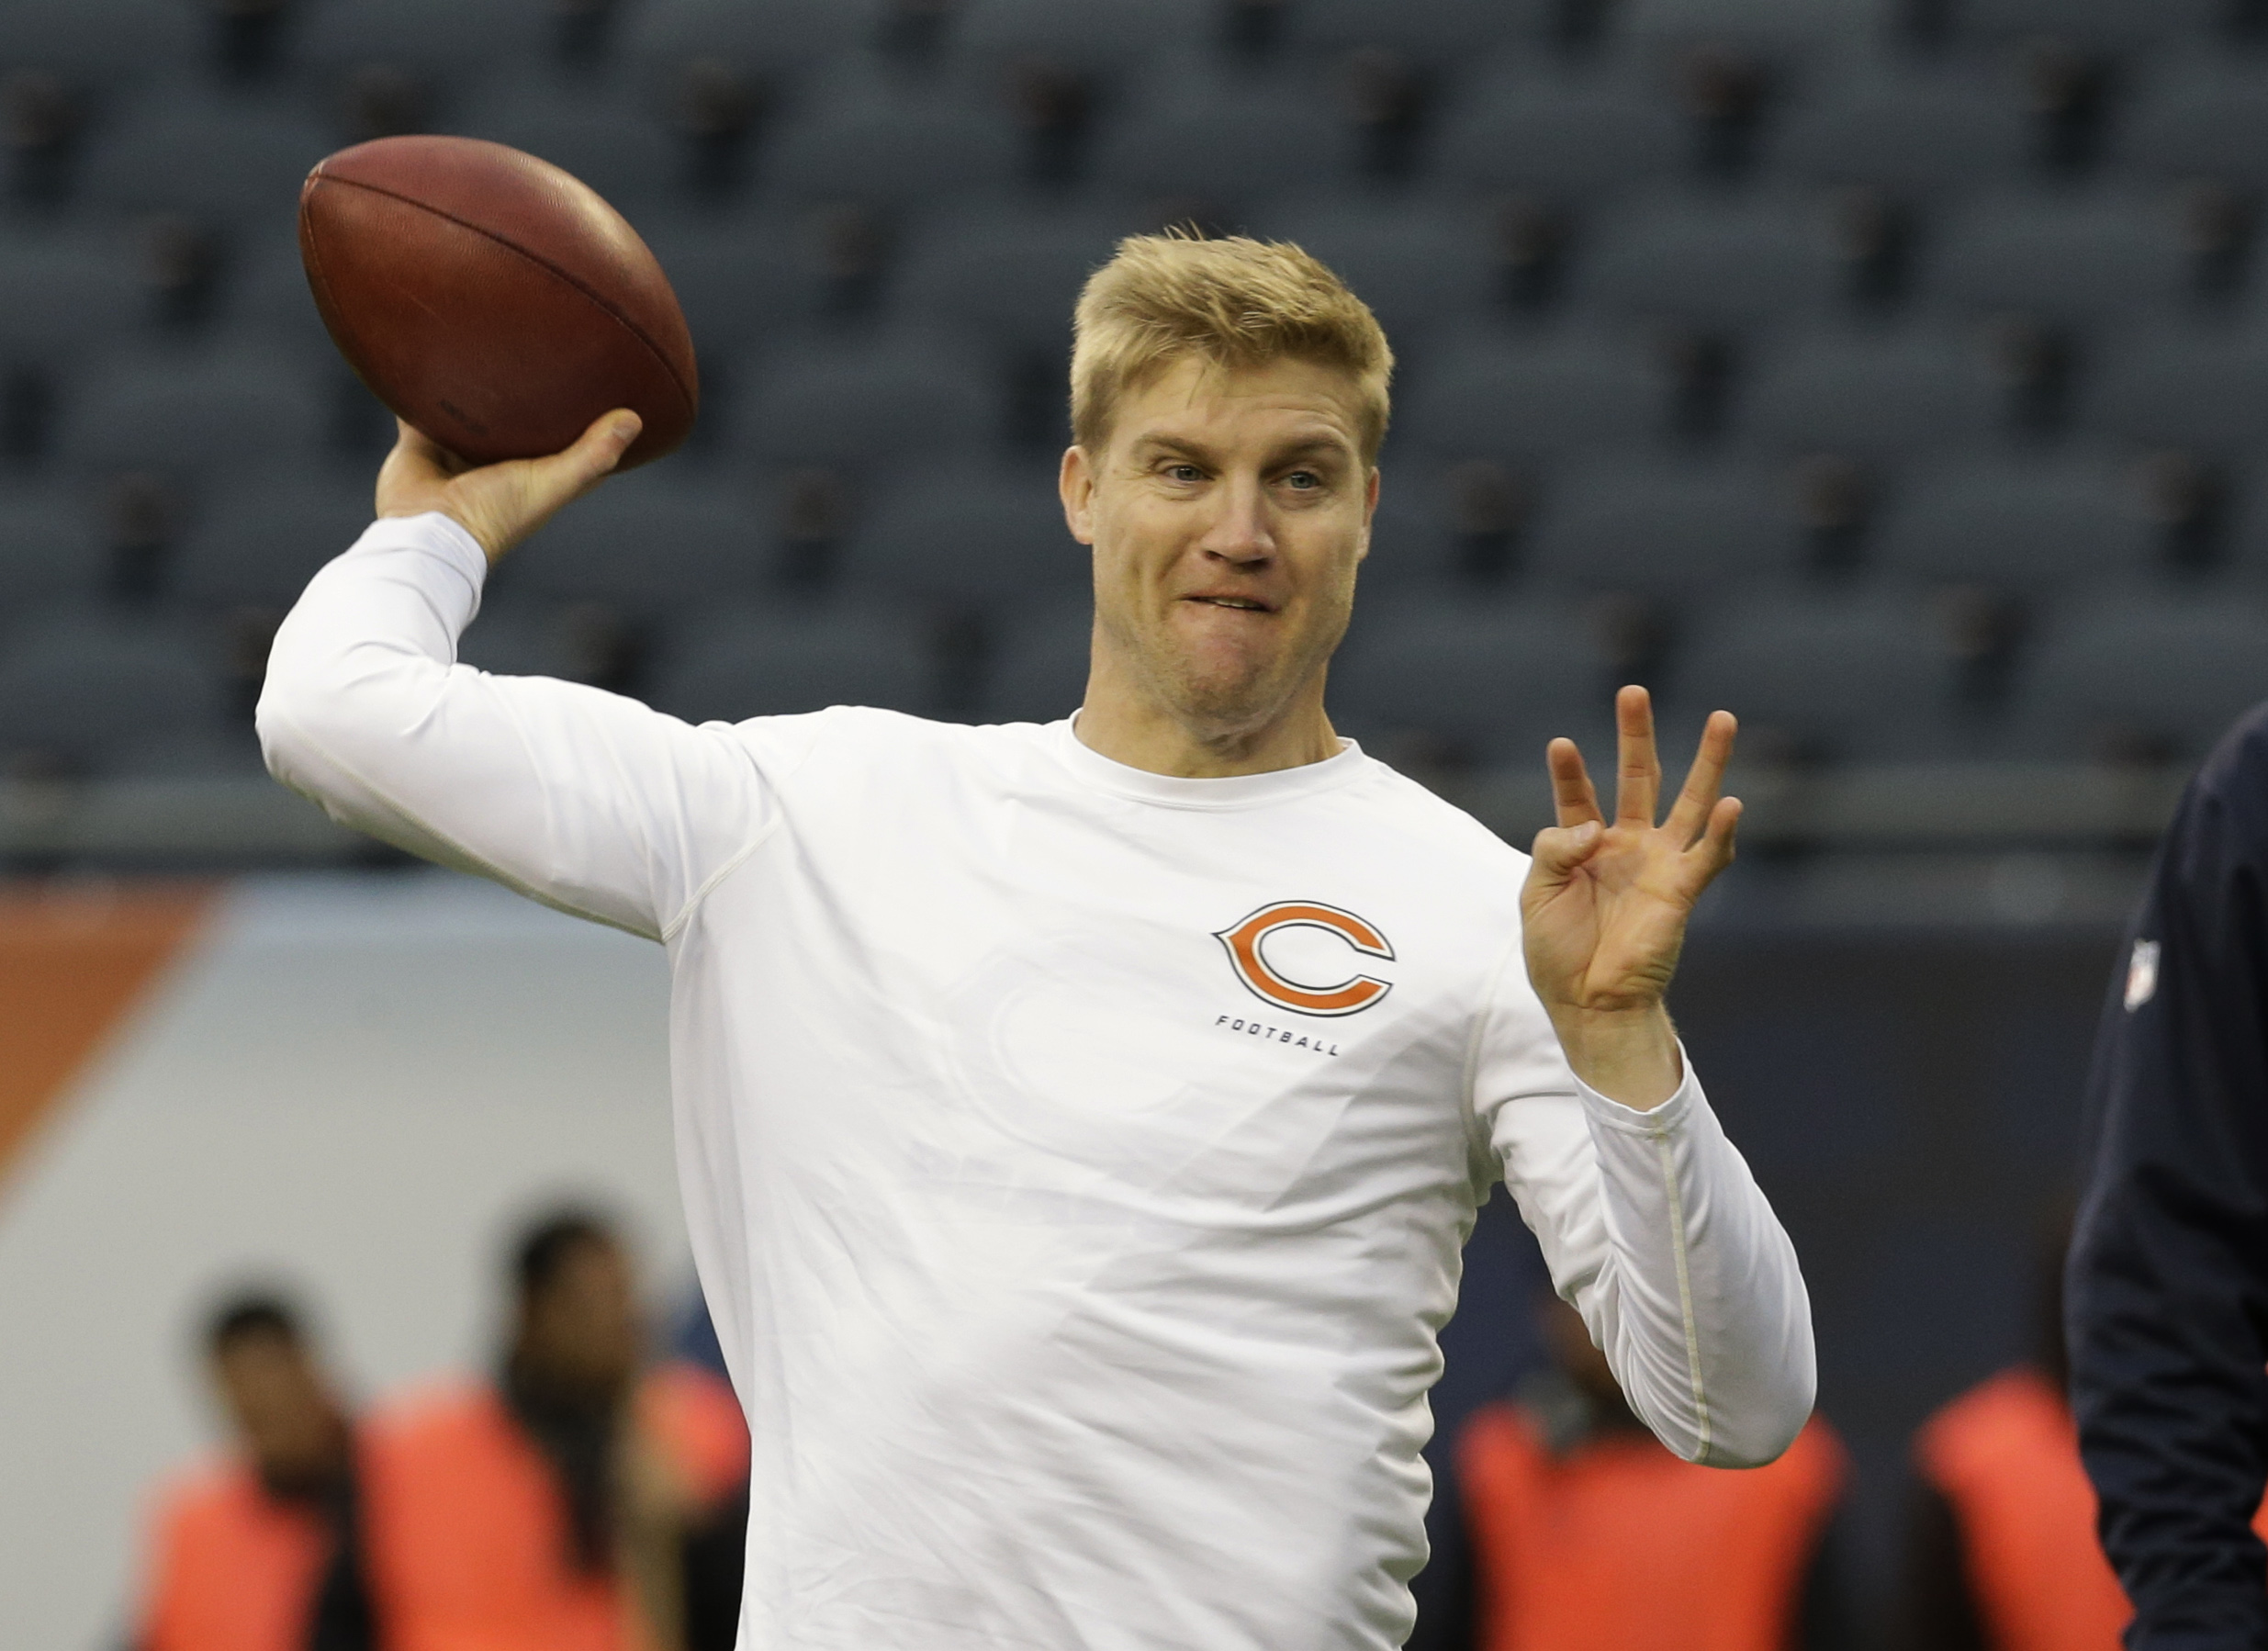 Chicago Bears quarterback Josh McCown (12) warms up before an NFL football game against the Baltimore Ravens, Sunday, Nov. 17, 2013, in Chicago